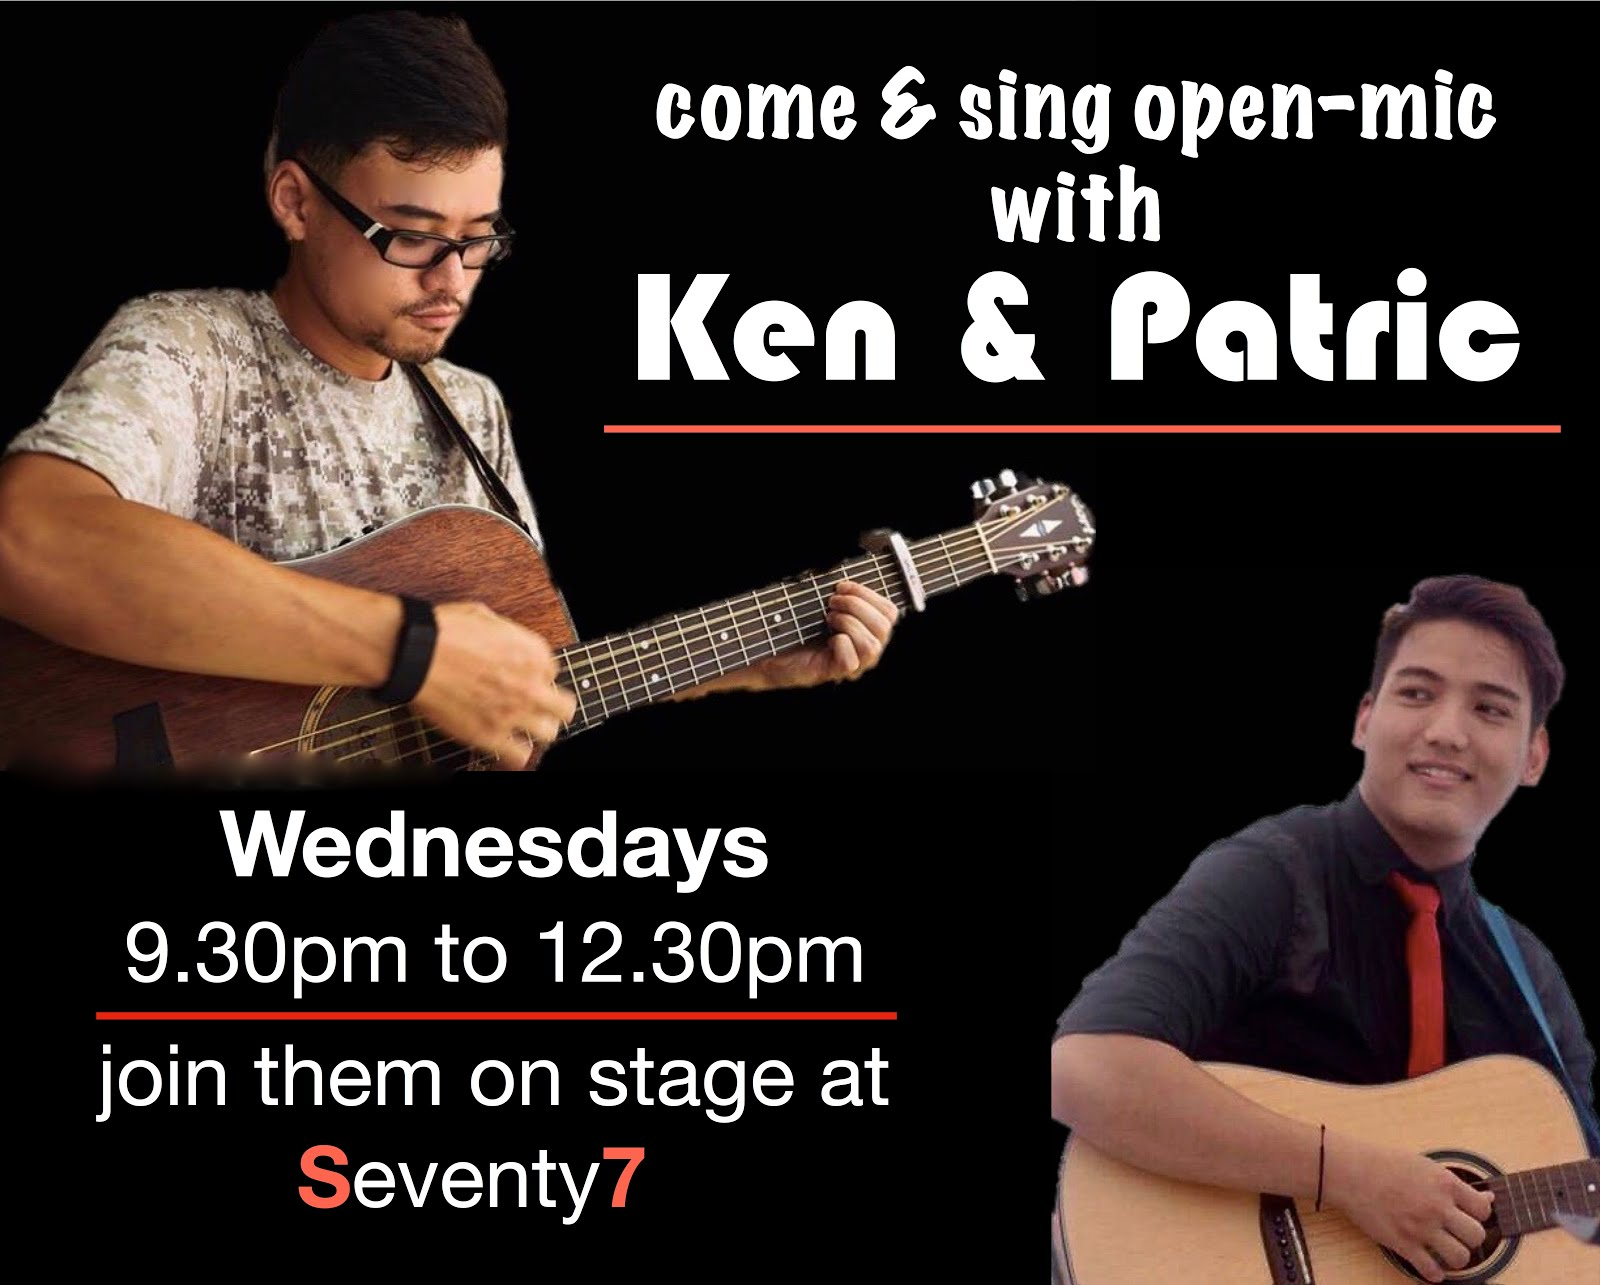 Wednesdays - OpenMic Night